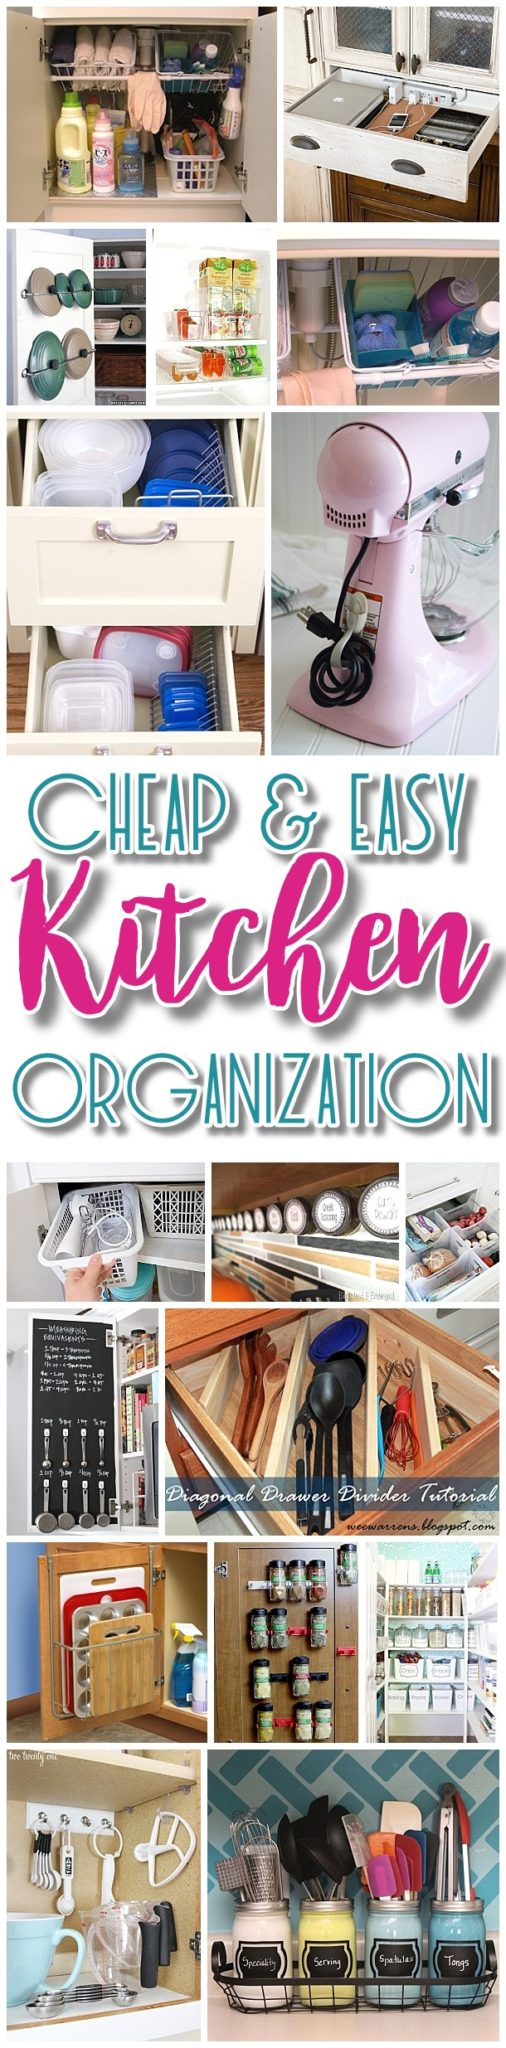 Easy and Budget Friendly Ways to Organize your Kitchen - Hacks, Ideas, Space Saving tips and tricks for Organization in the Kitchen Quickly - Dreaming in DIY #kitchenorganization #kitchenhacks #kitchentips #kitchenideas #organizationtips #organization #organizationideas